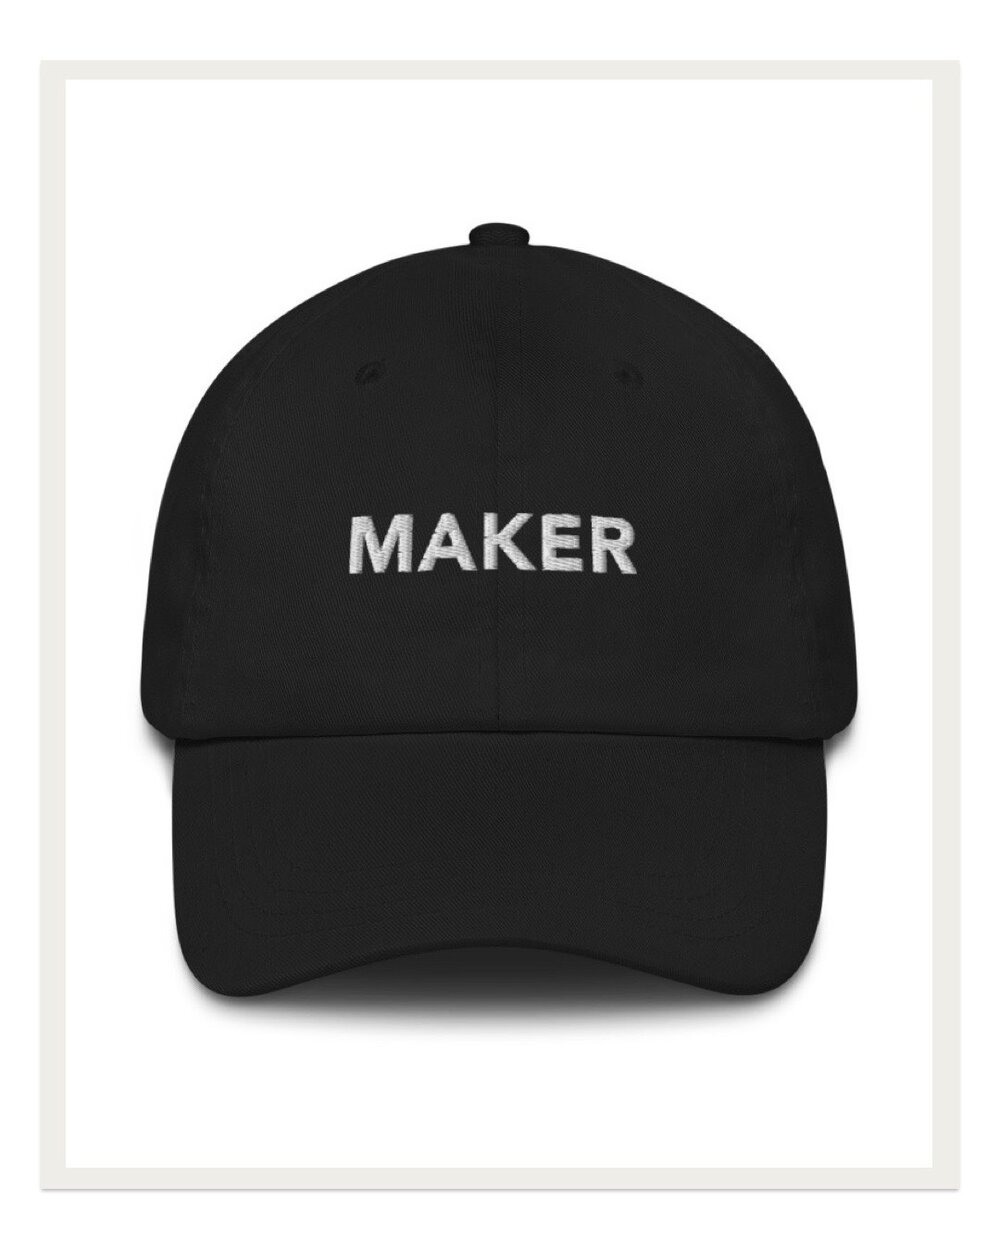 Make a statement in the new Maker hat from my maker merch line and complete that effortlessly cool casual look. Perfect for running errands, working out, or just chillin' on the couch.